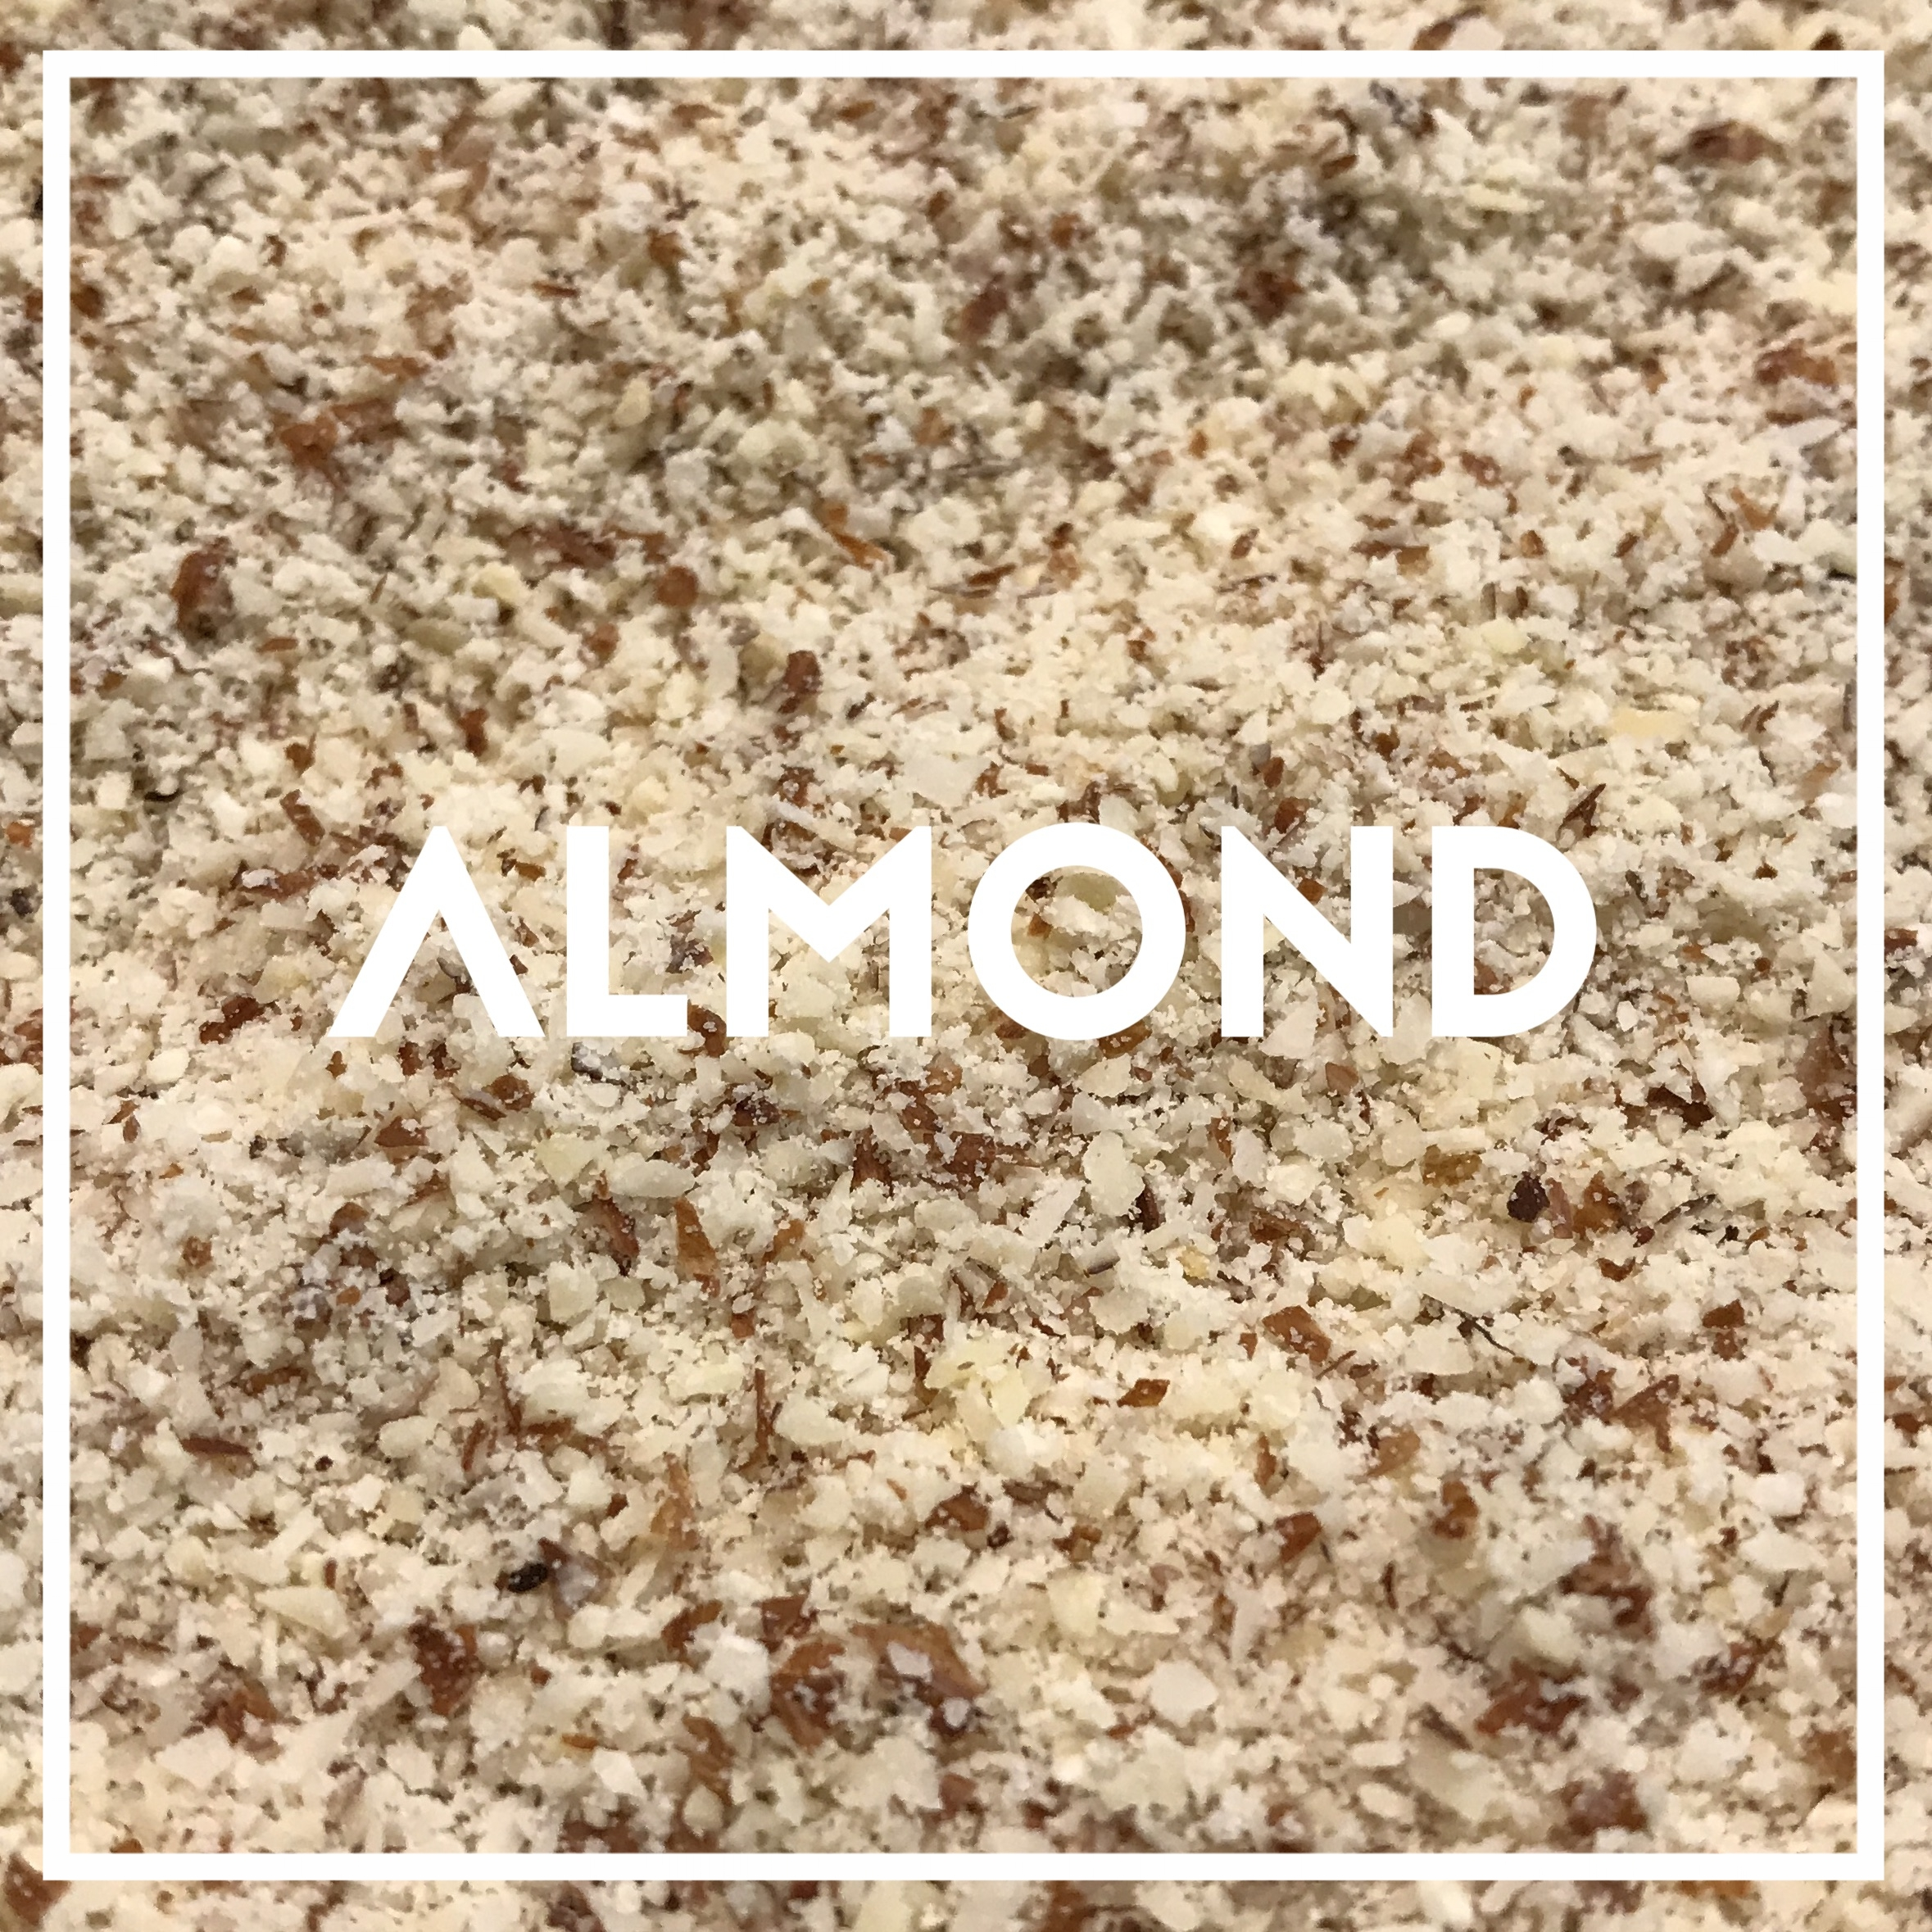 Almonds do not grow well in the midwest. Our almond meal is made from whole, unblanched almonds grown in California and stone-milled by  Hodgson Mill  in Effingham IL.   Used in: White Knight, 1776   Almond meal is good friend to every pastry' chef. Rich in flavors and very light in texture, almond meal lends a rich, buttery flavor to our cakes.